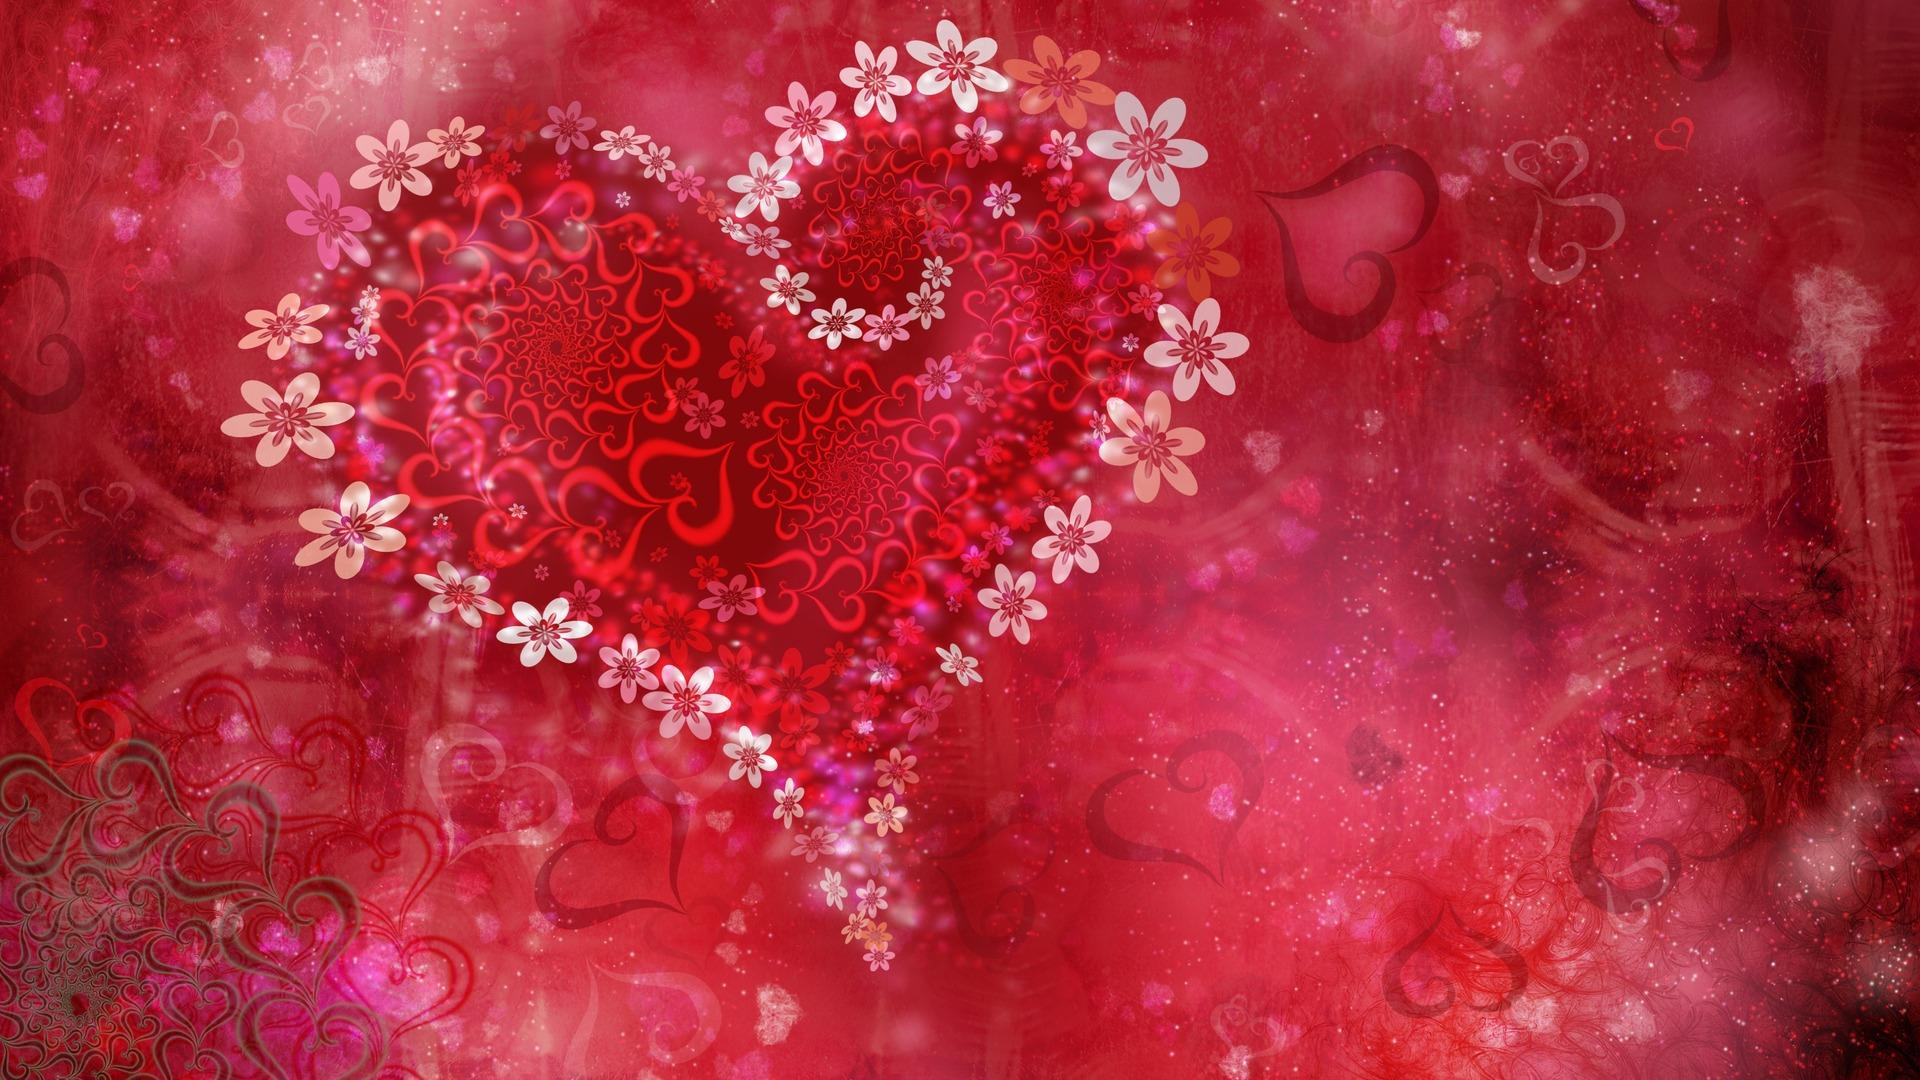 love hearts hd images 12 wide wallpaper - hdlovewall